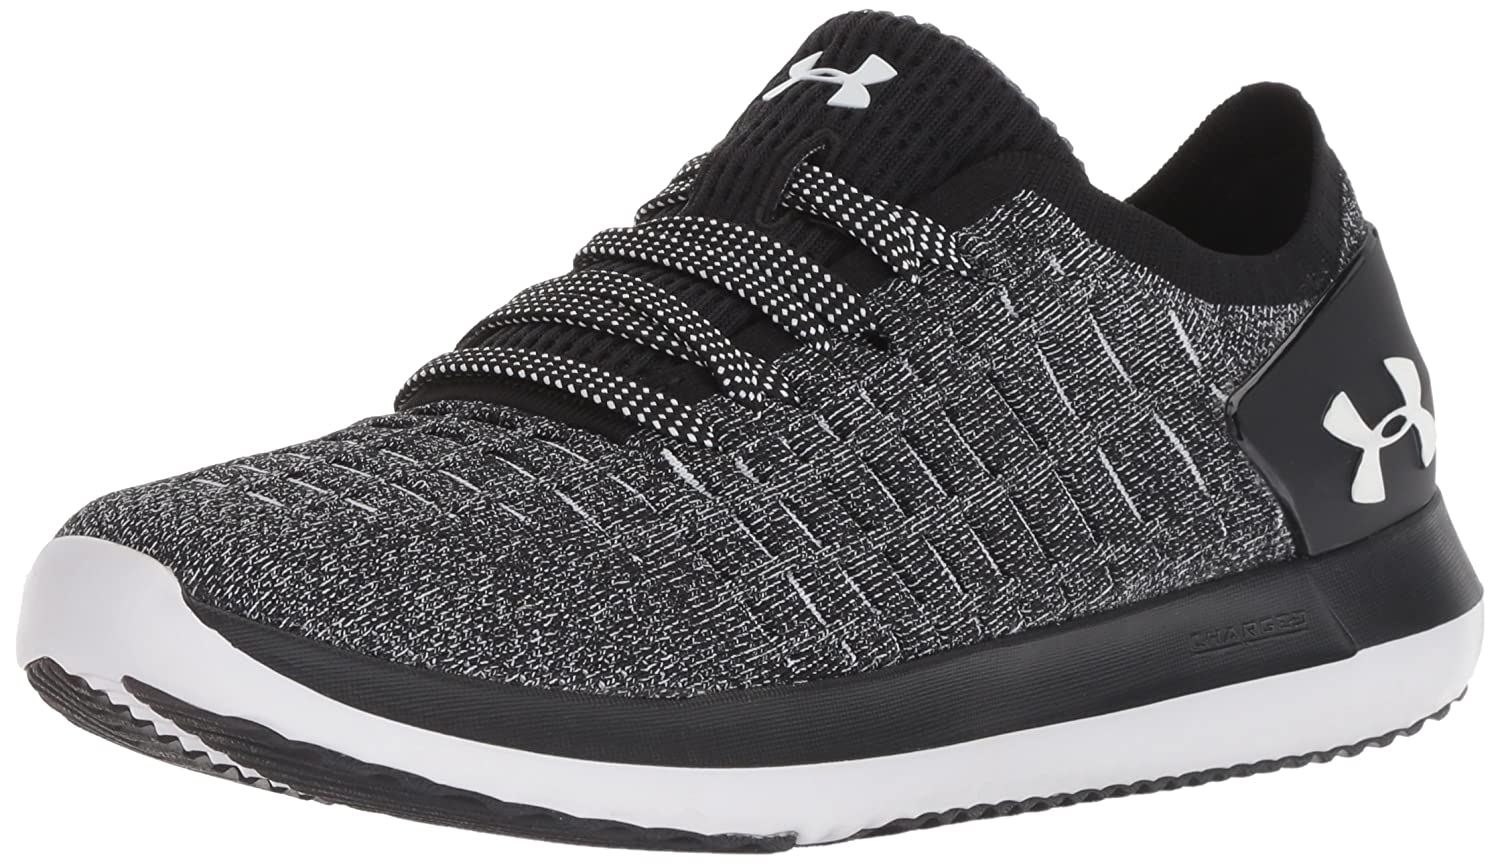 Under Armour Women's Slingride 2 Sneaker B076S53KKP 10.5 M US|Black (004)/Black